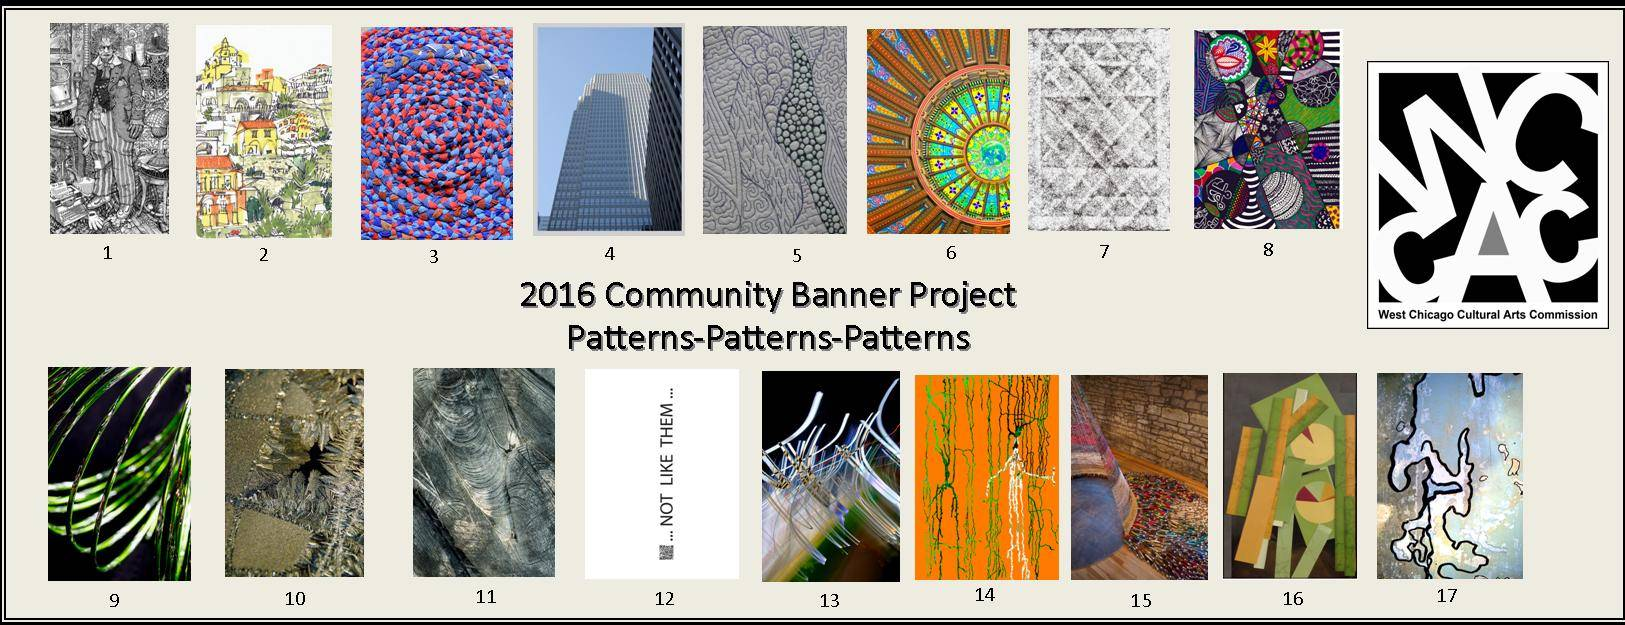 The cover of the 2016 Community Art Banner Walking Tour Map shows the 17 original works of art that have been transferred to banners and which hang on Main Street in West Chicago until early September.